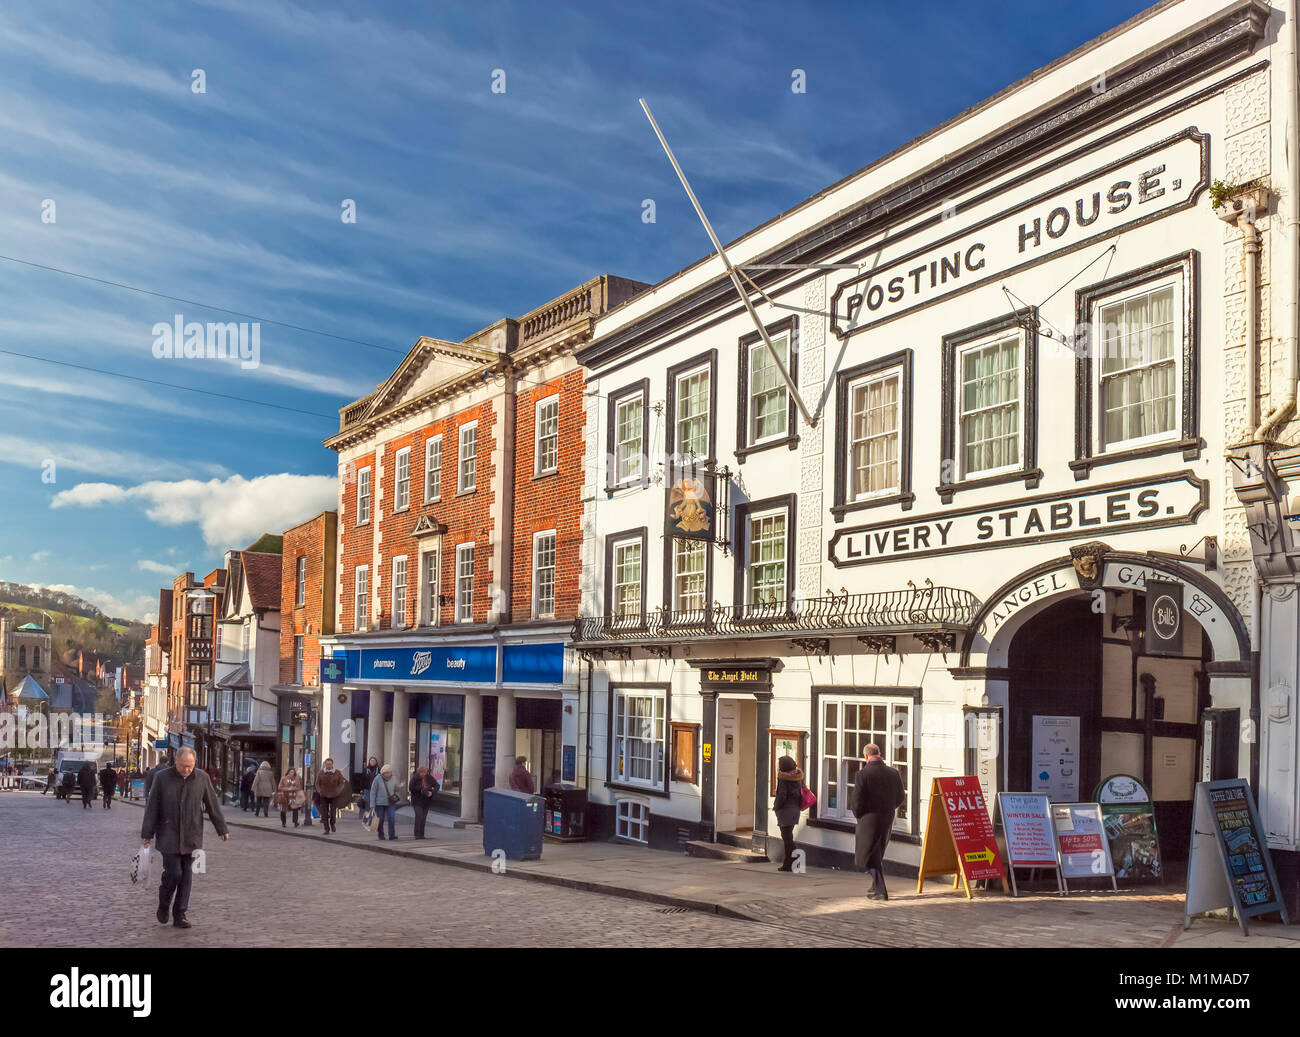 The Angel Hotel Posting House, Guildford High Street. - Stock Image